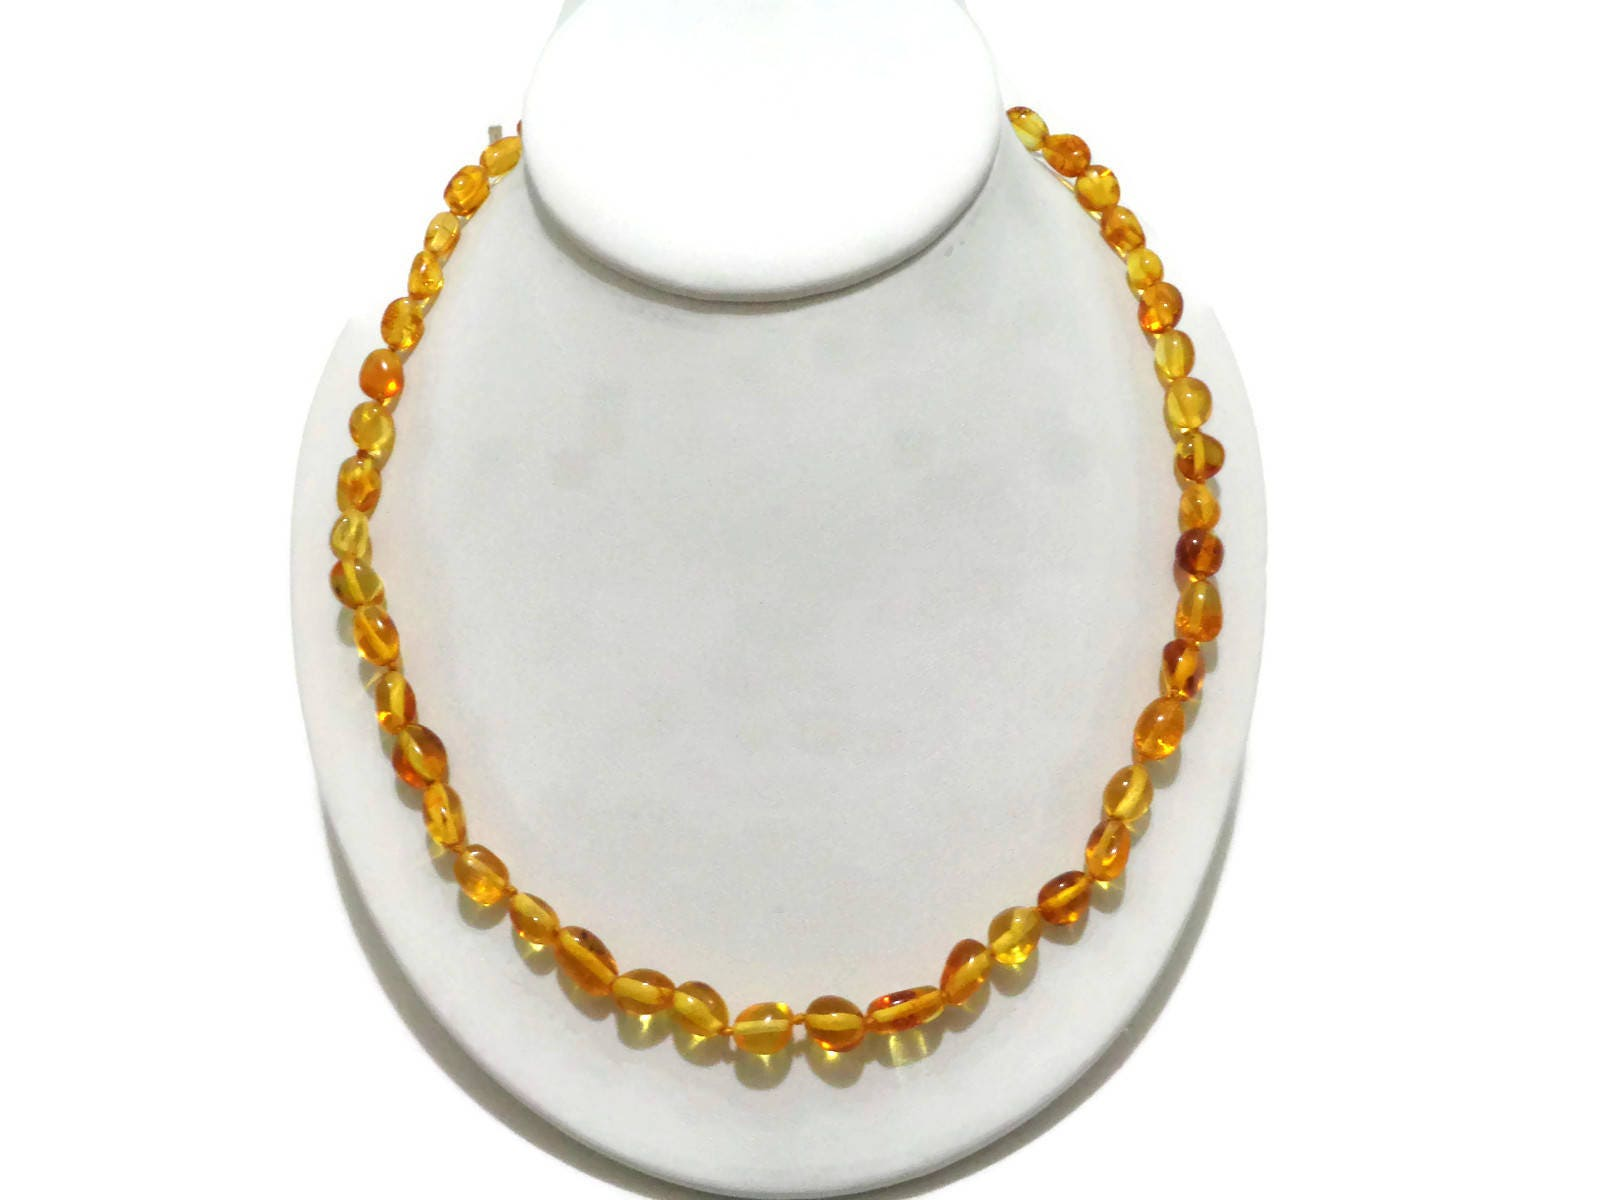 baltic amber necklace for adults real amber necklace polished